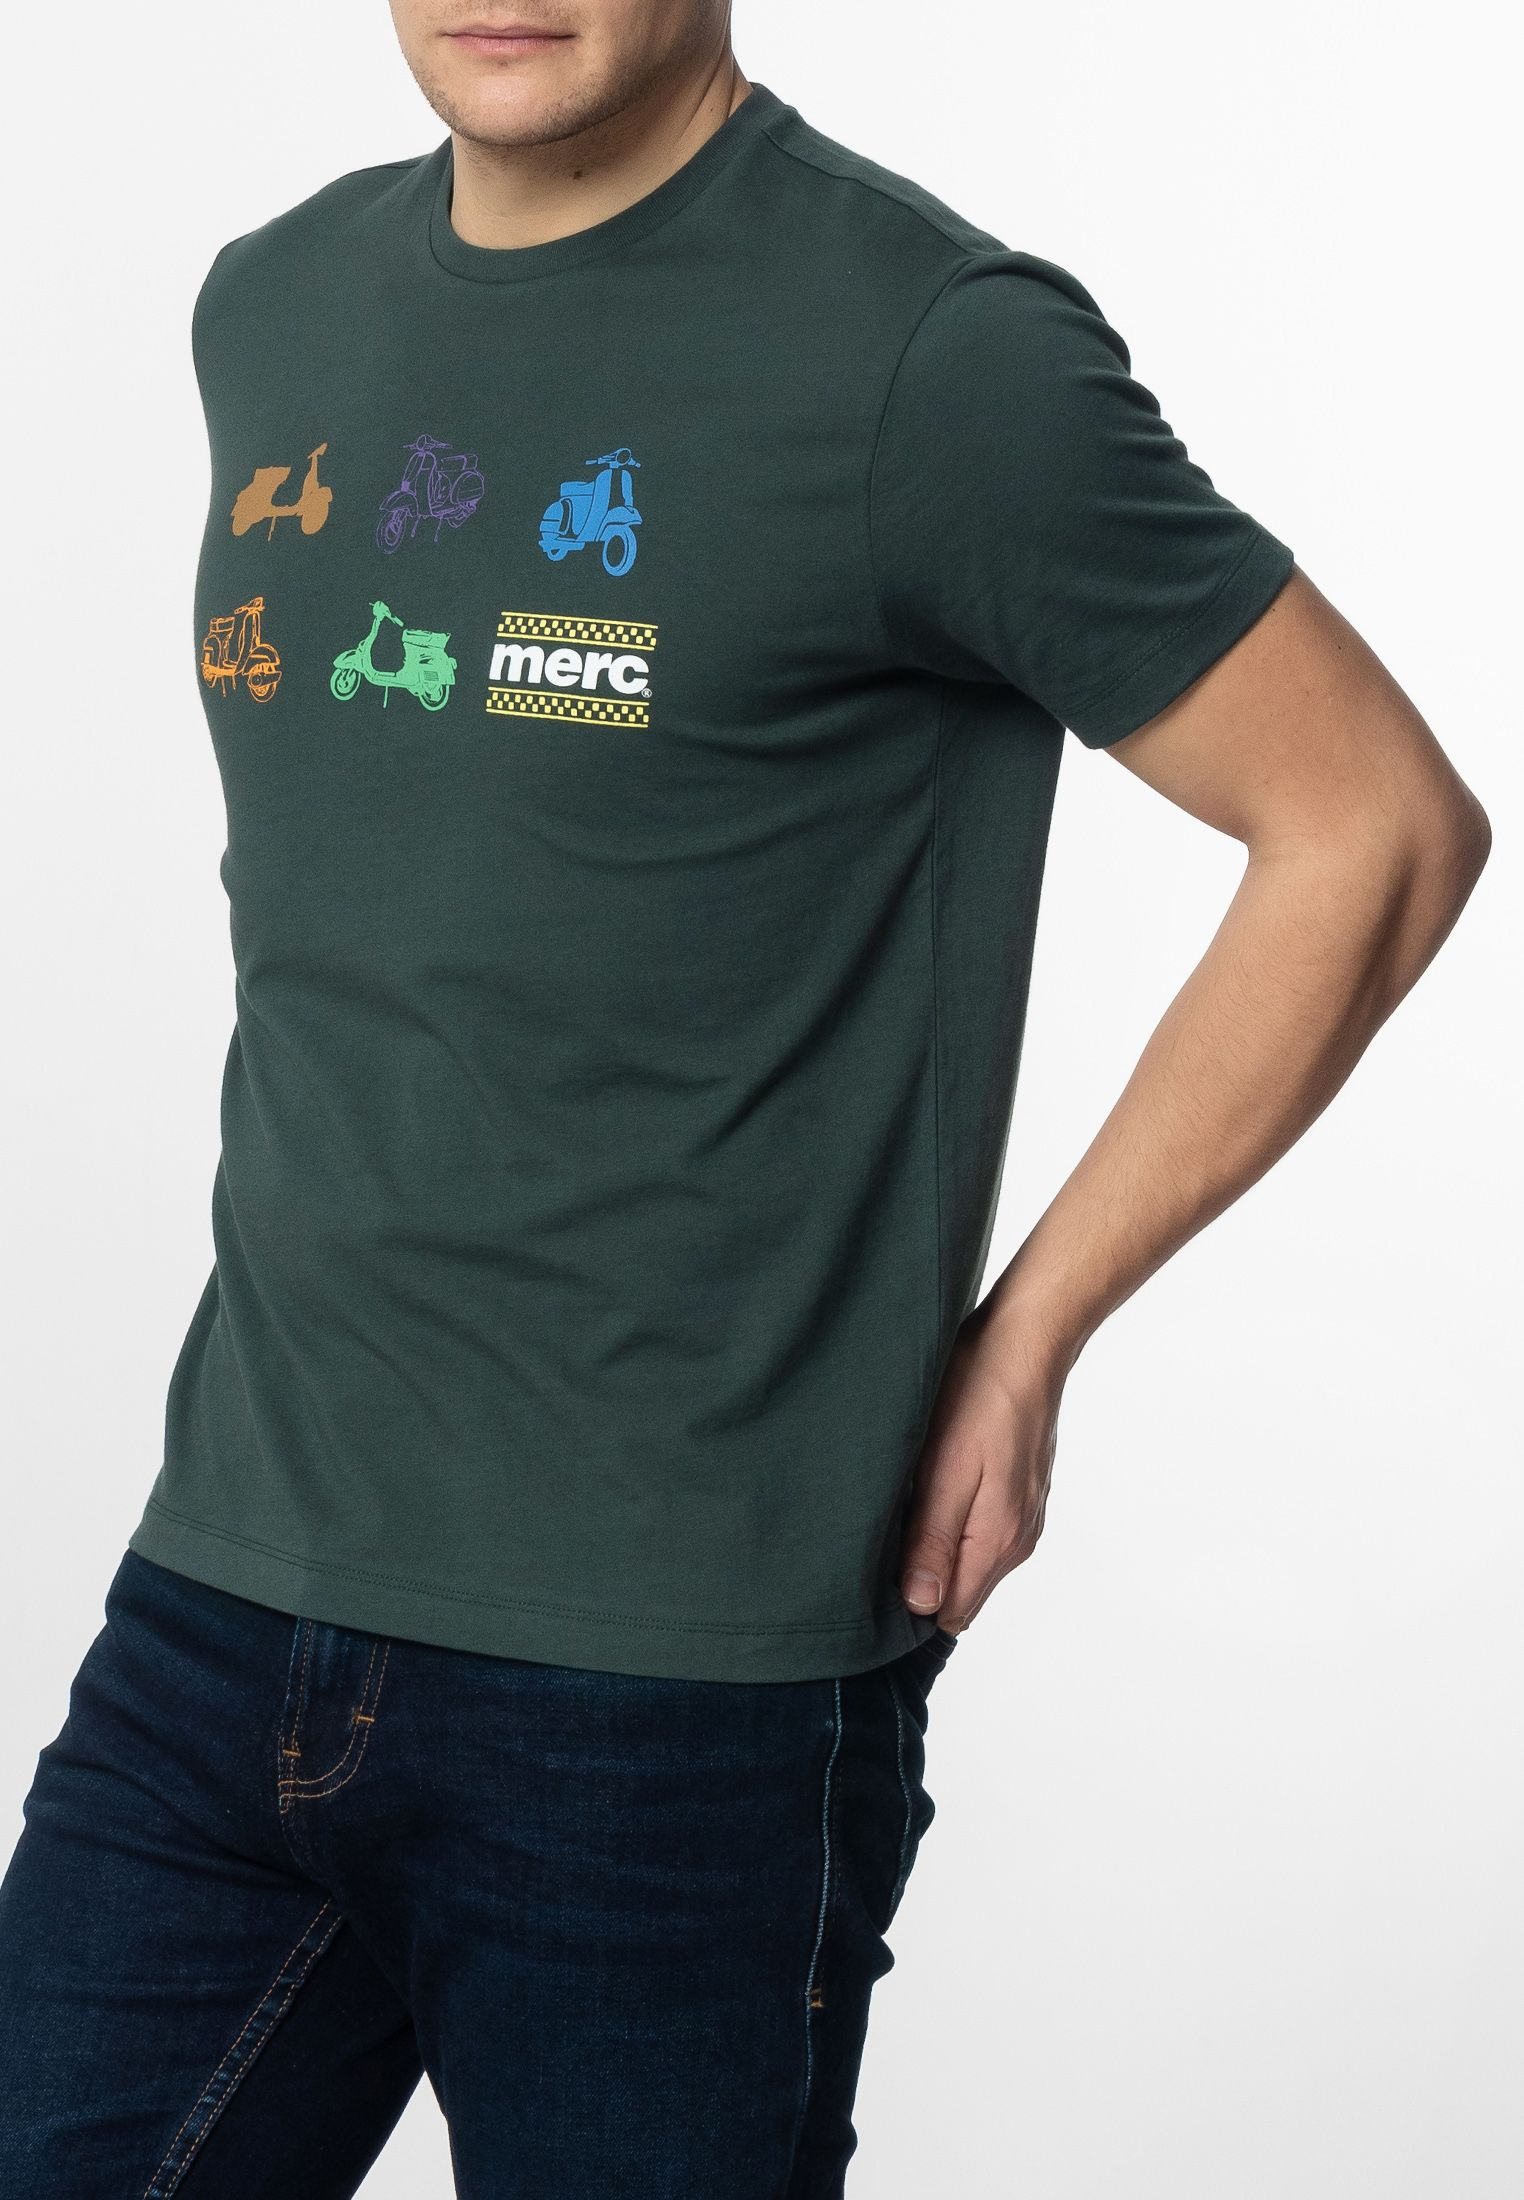 Halford Mens Cotton T-Shirt With Small Scooters Icons Print In Bottle Green